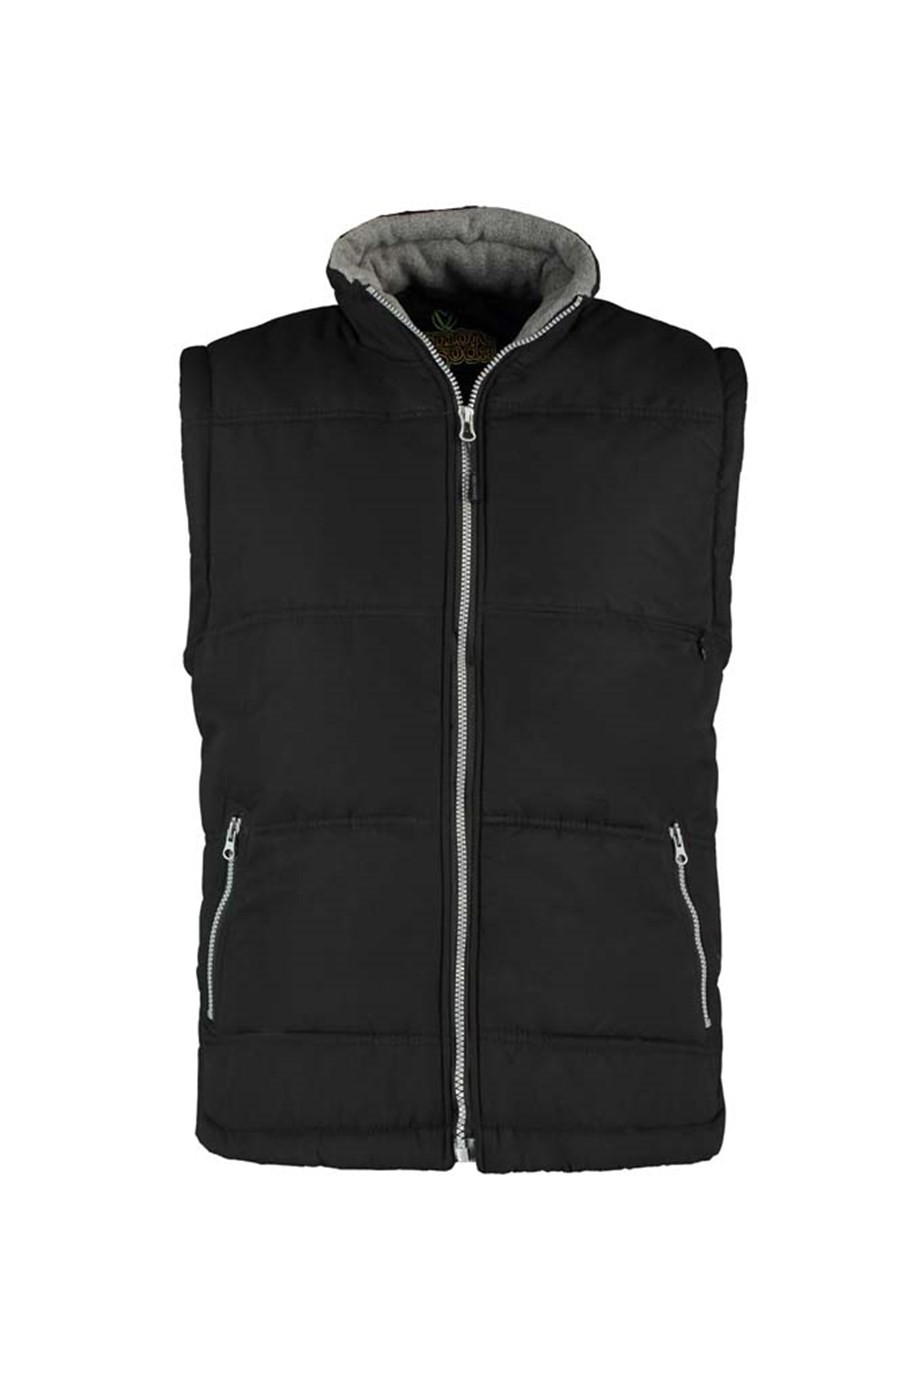 Bodywarmer unisex 3770, Lemon & Soda